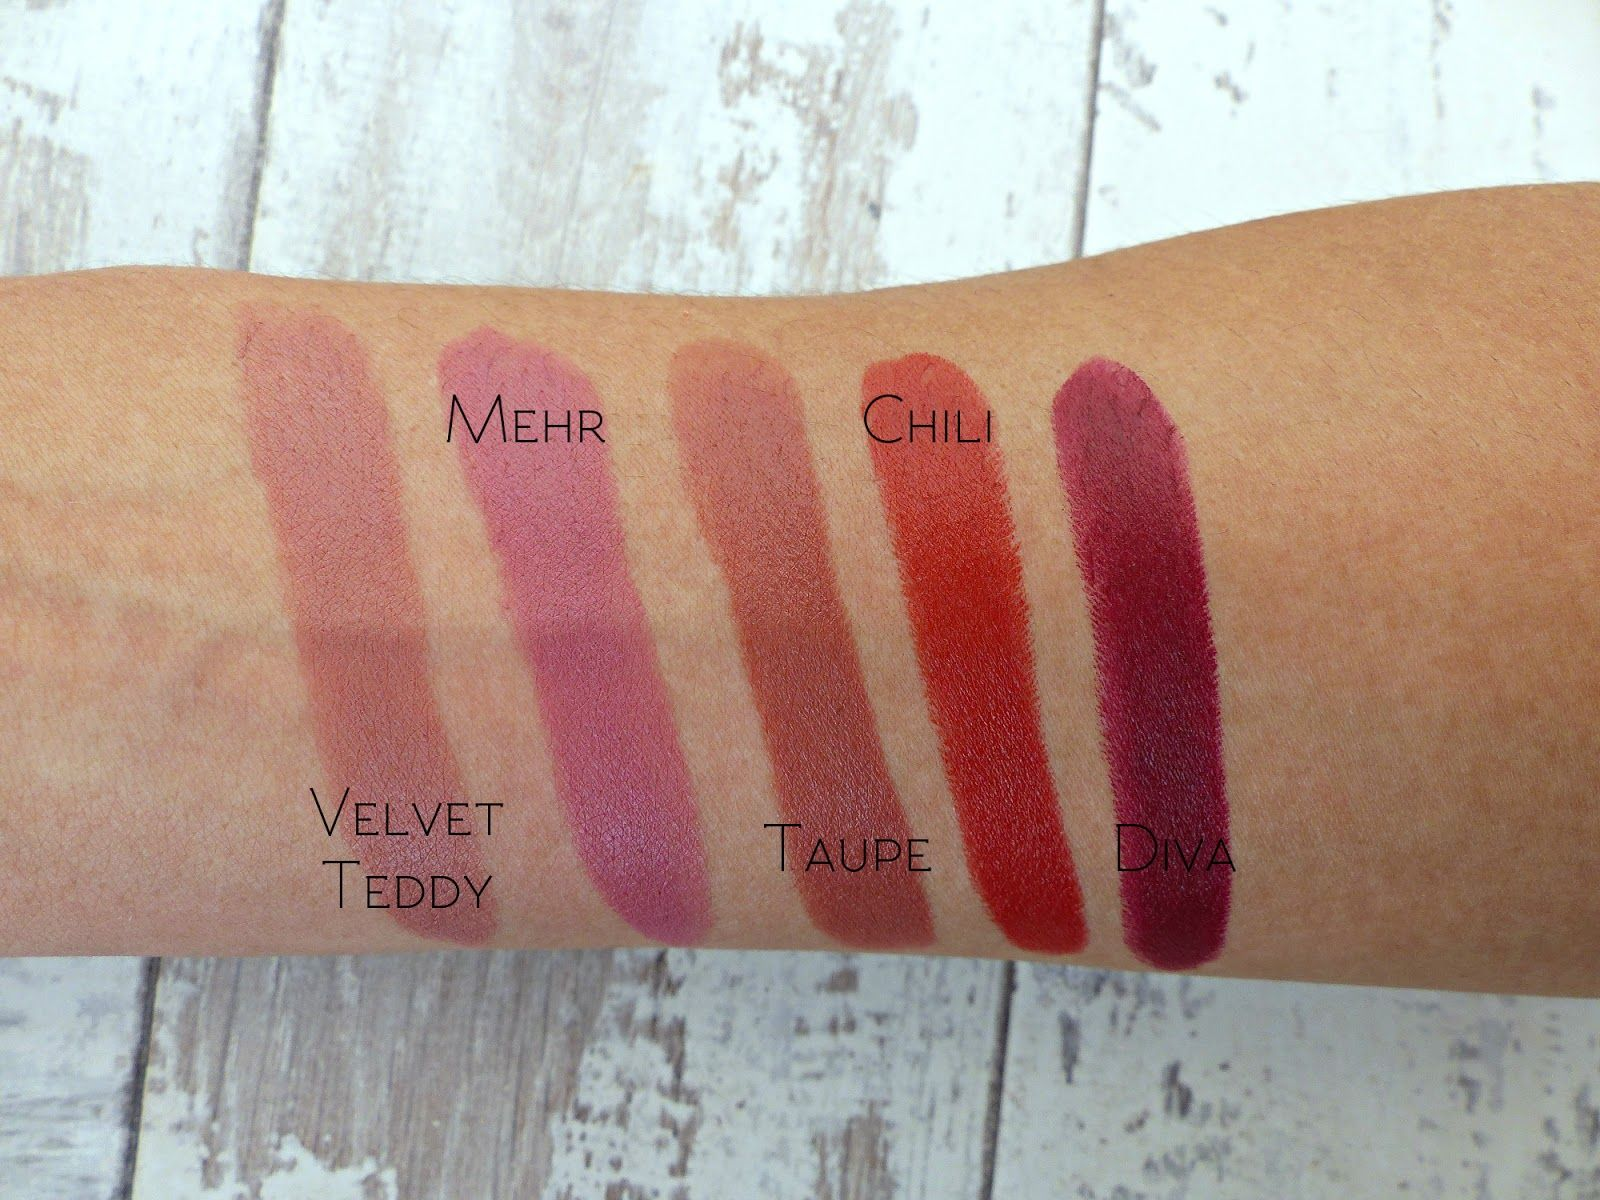 just uploaded a Mac lipstick collection